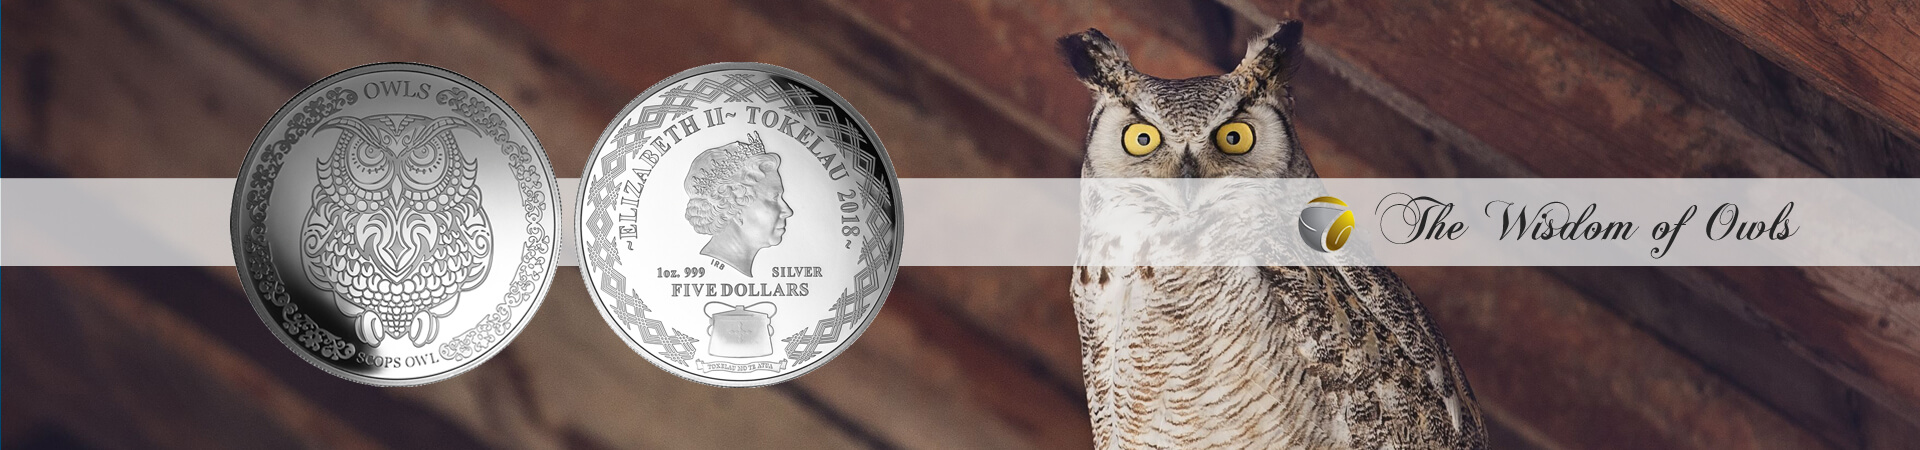 Wisdom of Owls coins